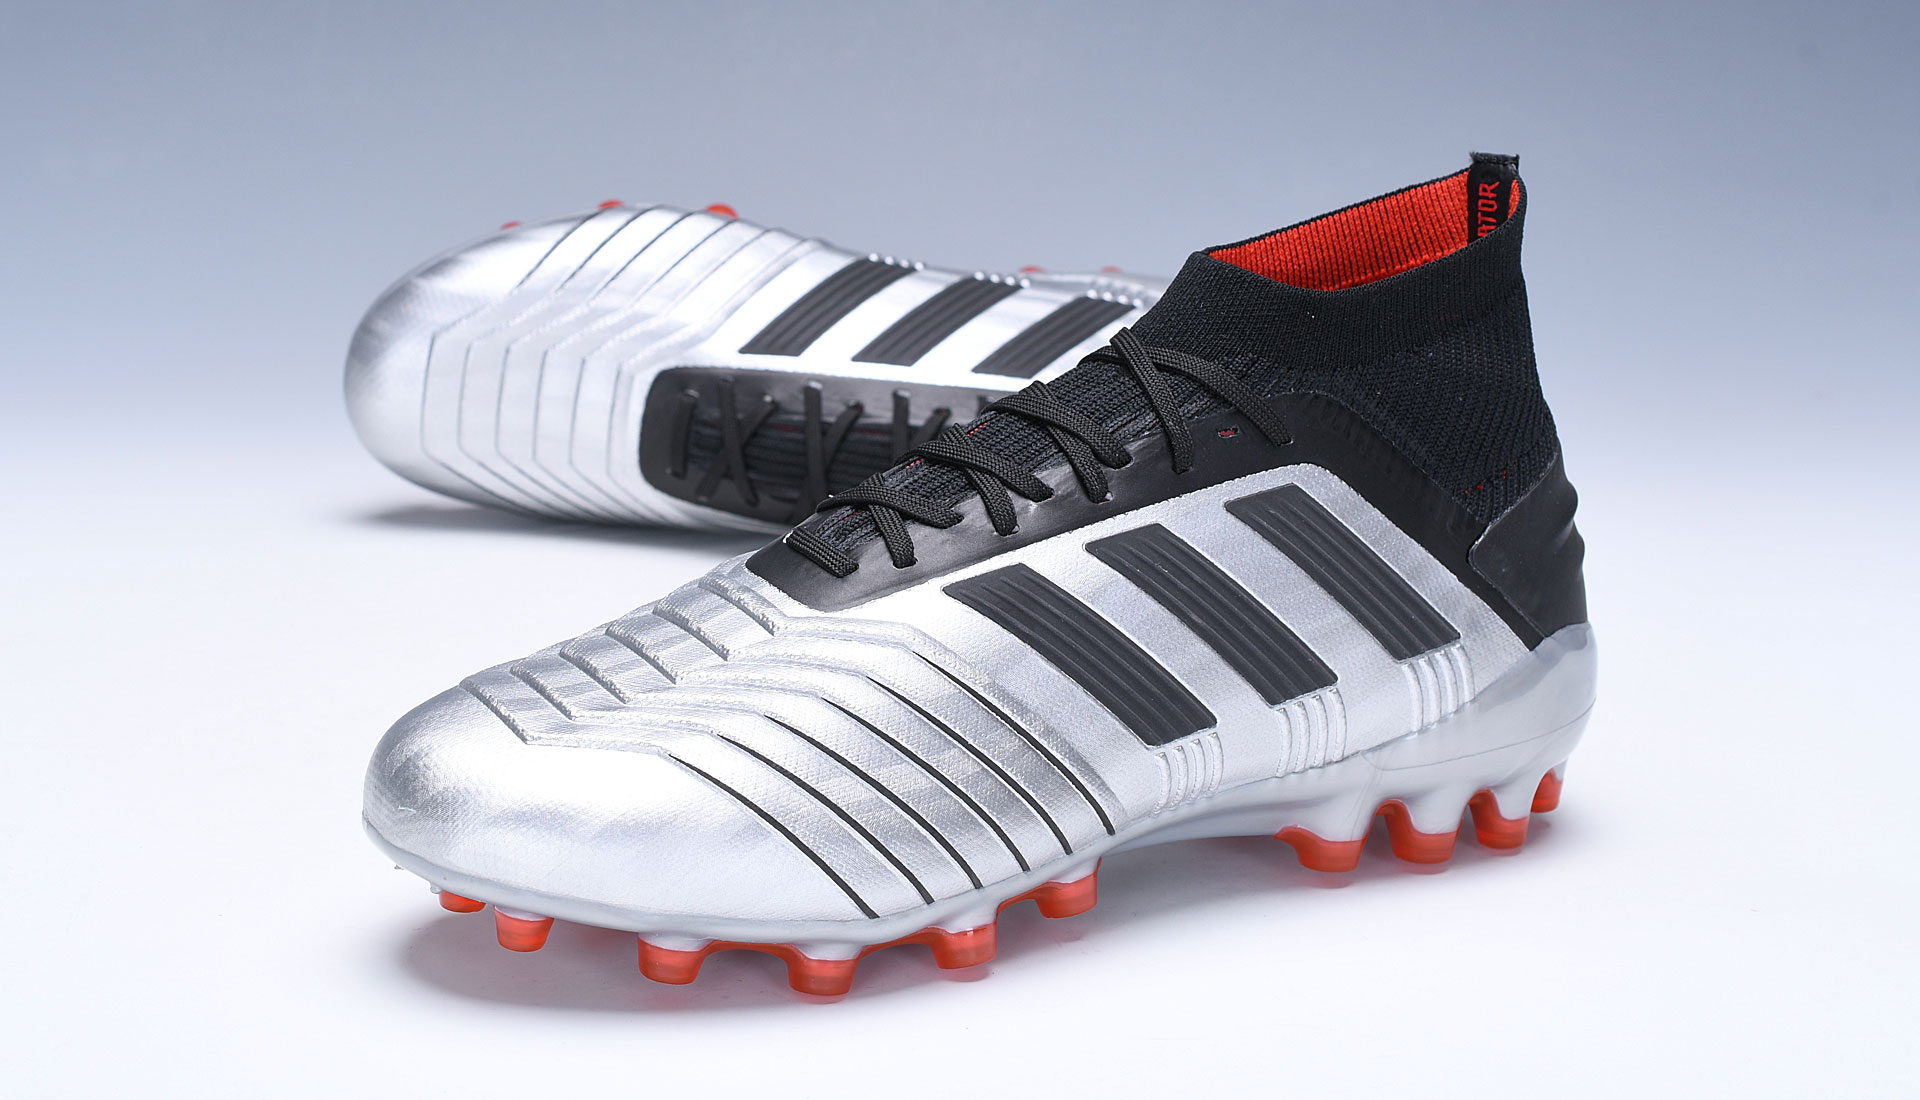 adidas Predator 19.1 AG Silver Red Football Boots Outside